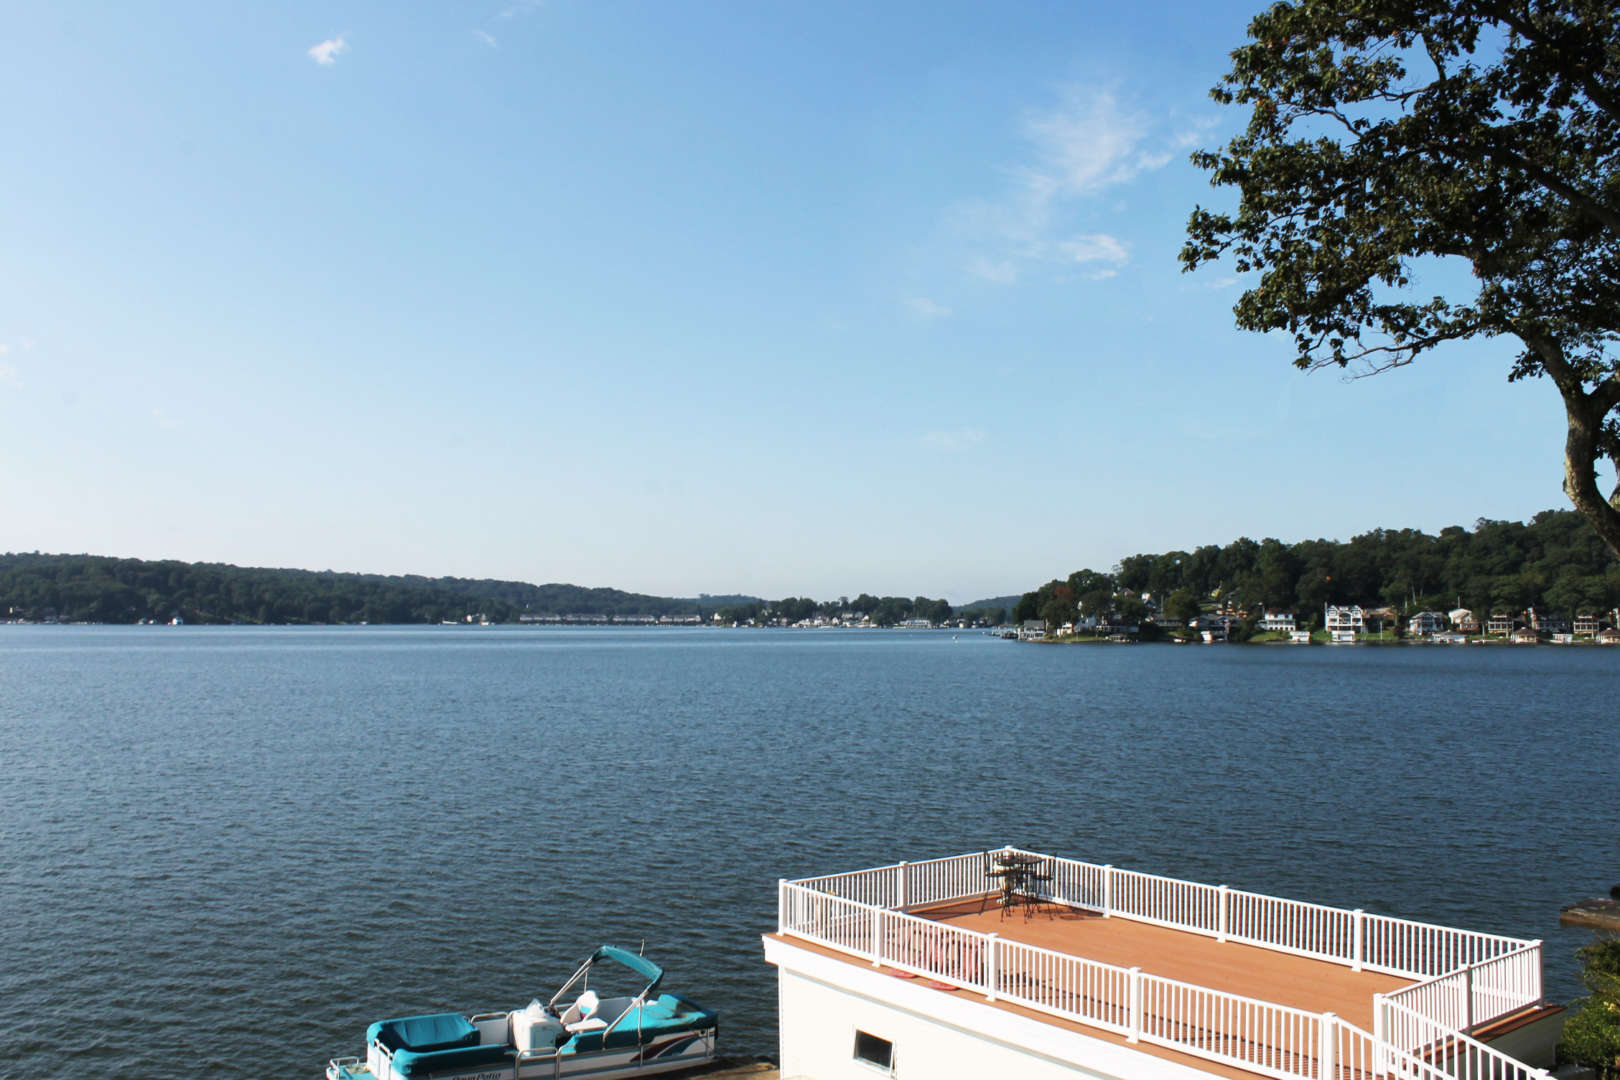 Lake Hopatcong